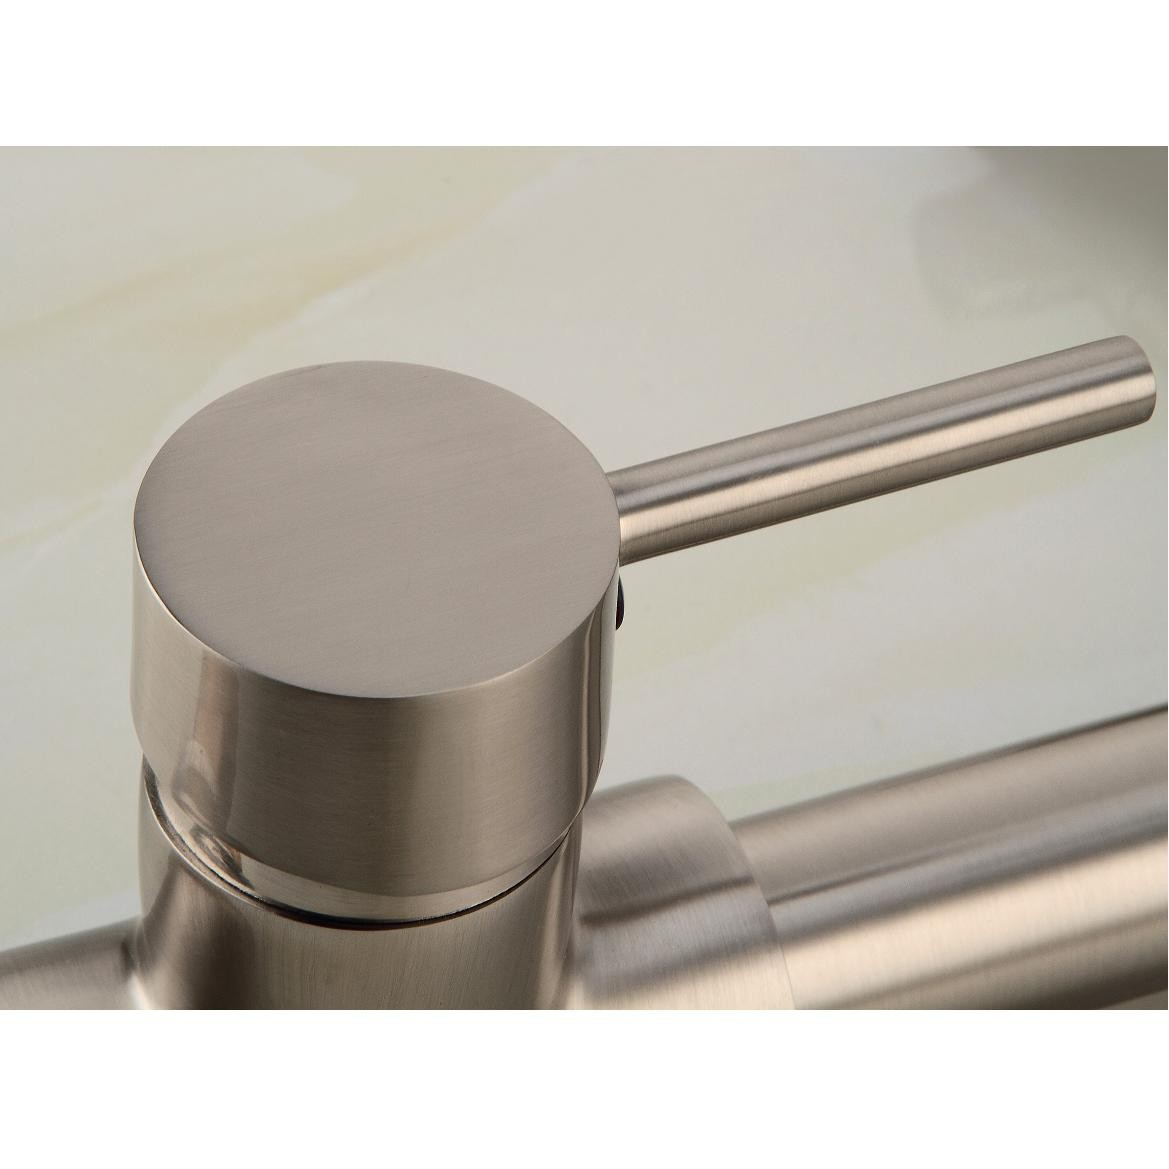 /3062-6438/contemporary-single-handle-nickel-brushed-pull-out-spray-led-kitchen-faucet-with-3-color-changing-fa0783snf.jpg